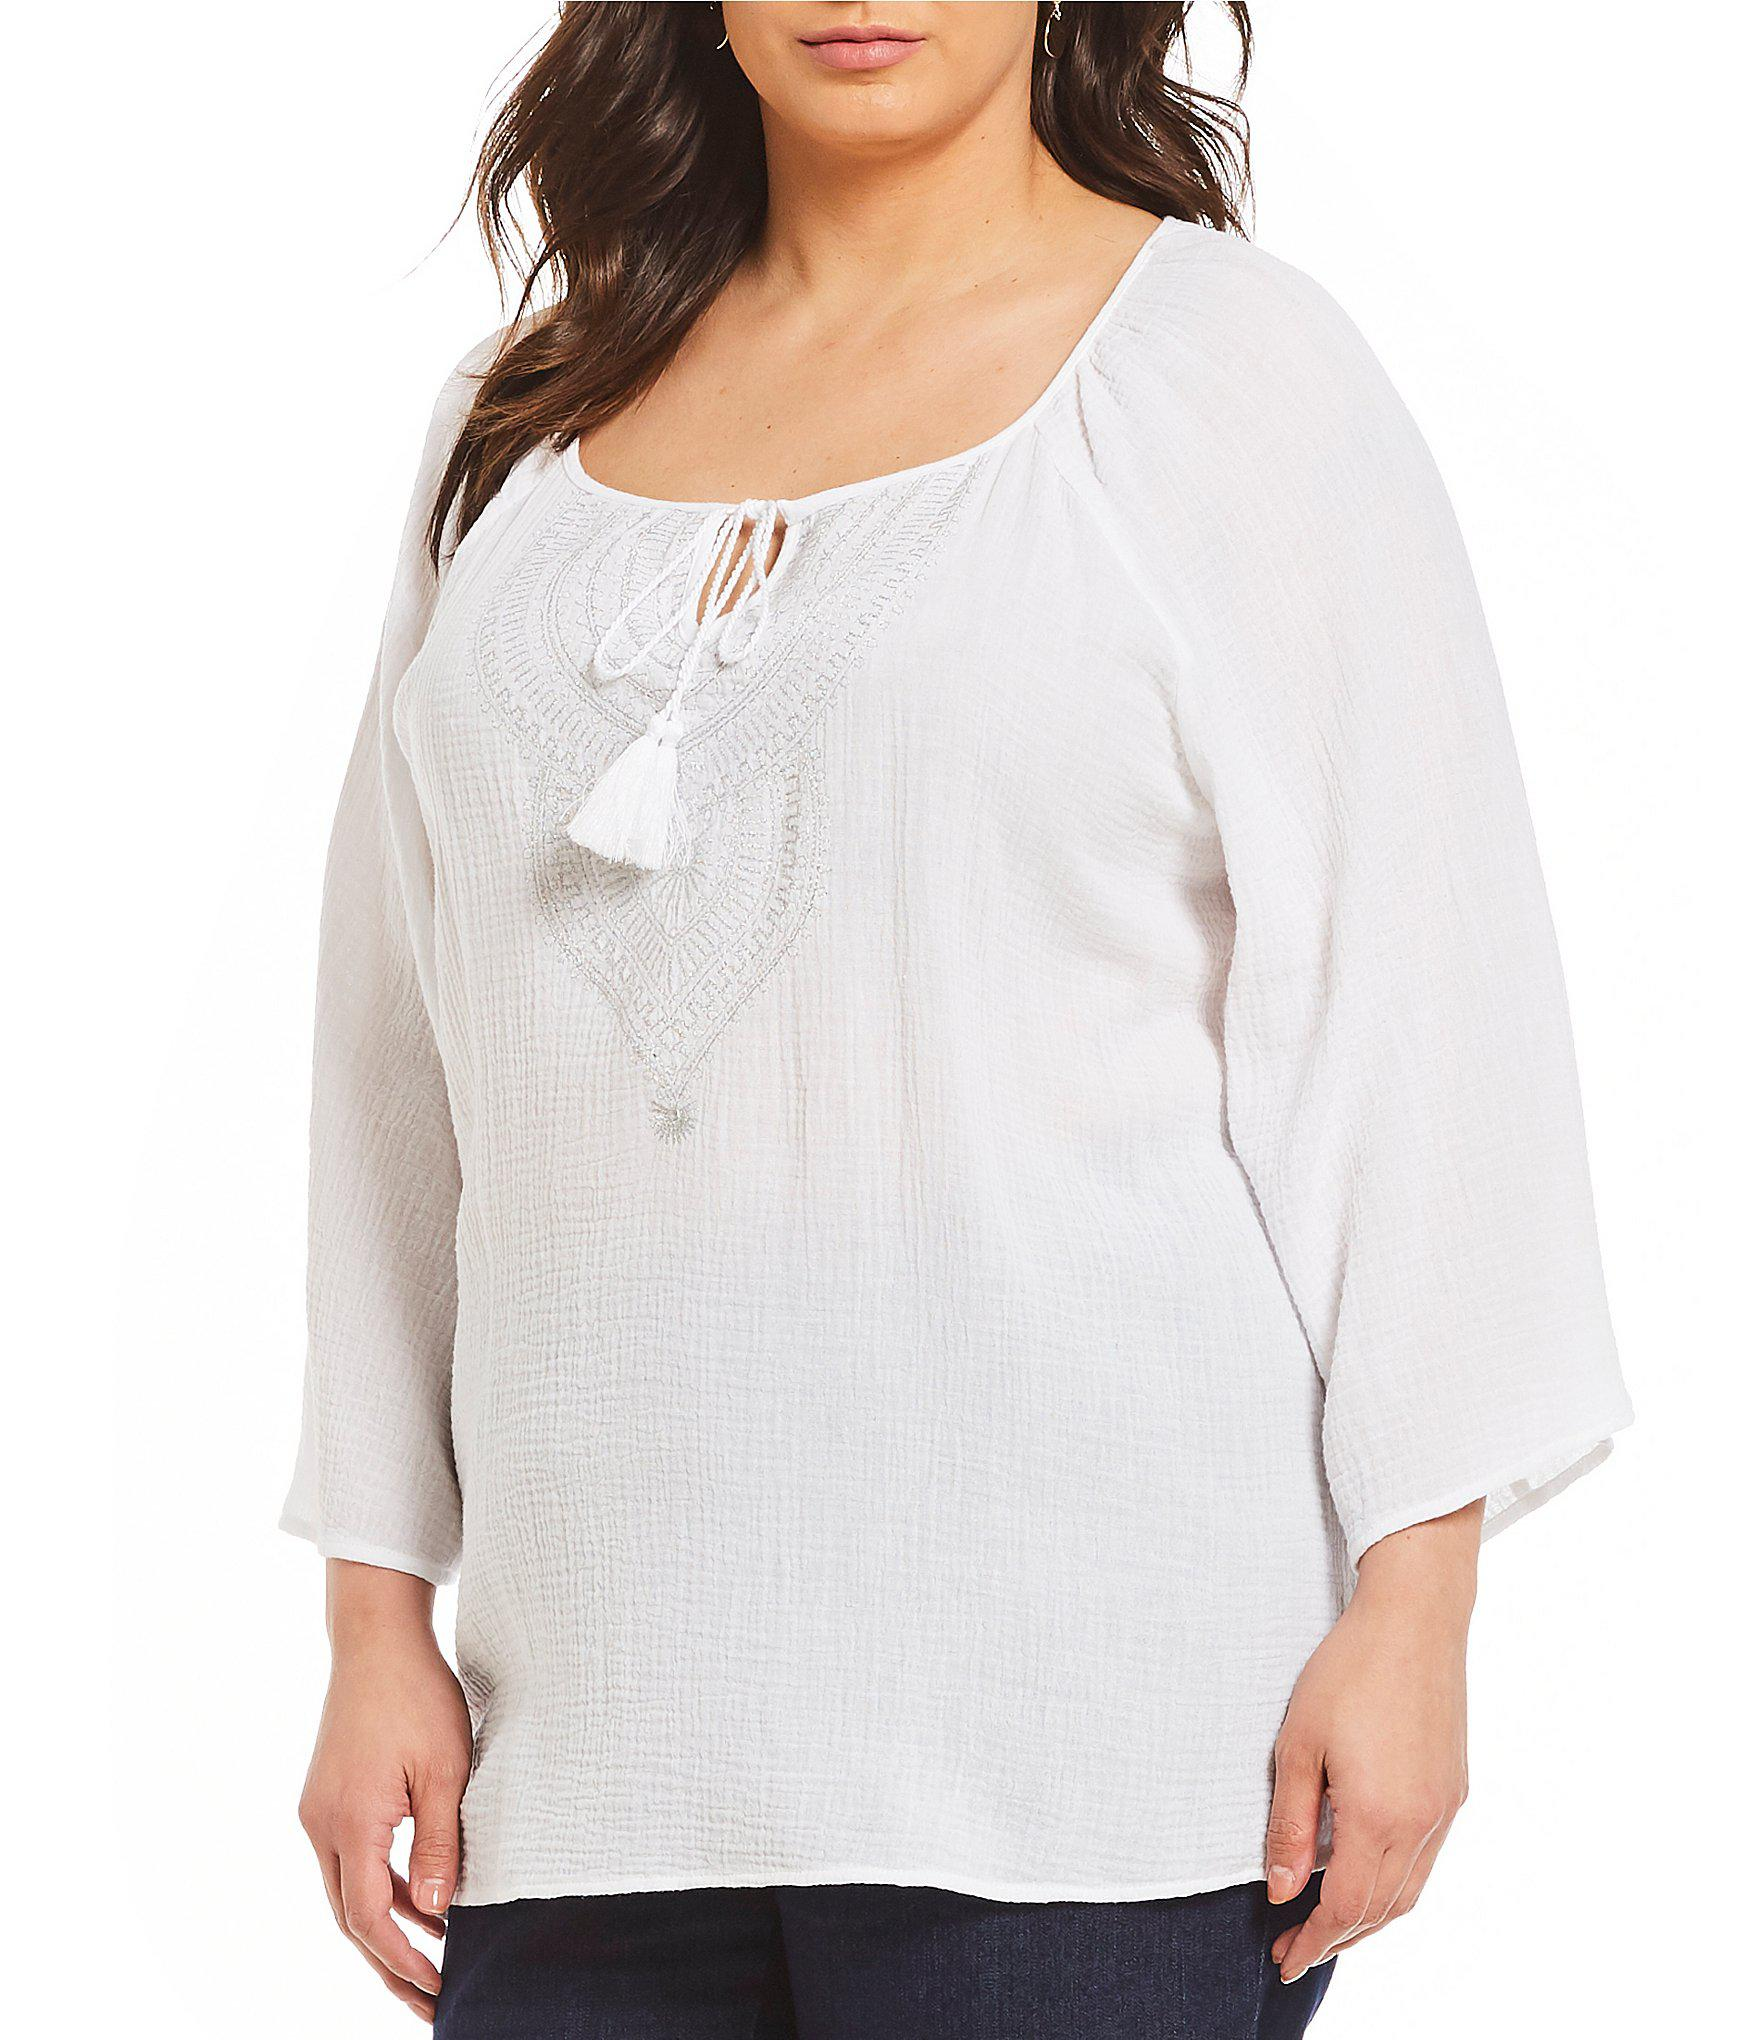 71ace77aca45ba Ruby Rd. Plus Size 3/4 Sleeve Solid Embellished Double Gauze Top in ...